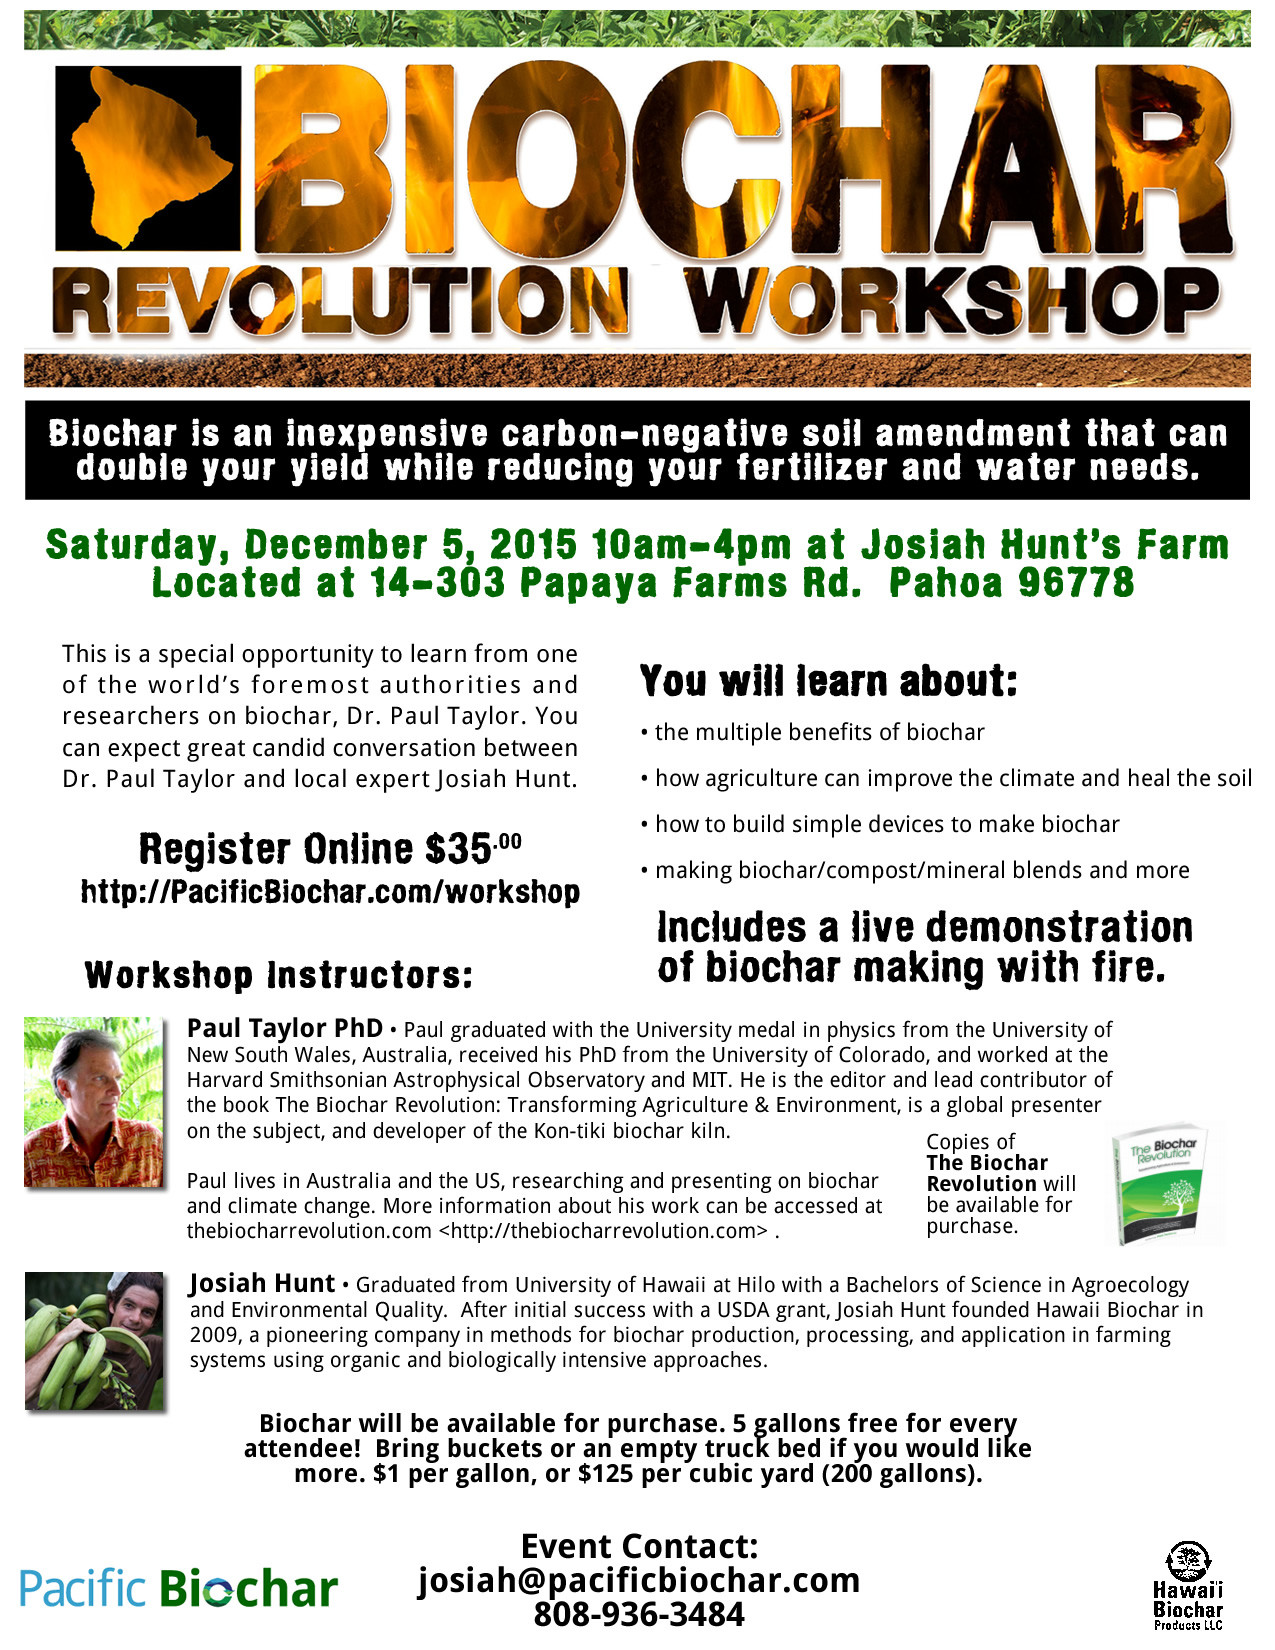 Biochar Revolution Workshop December 5th, 2015